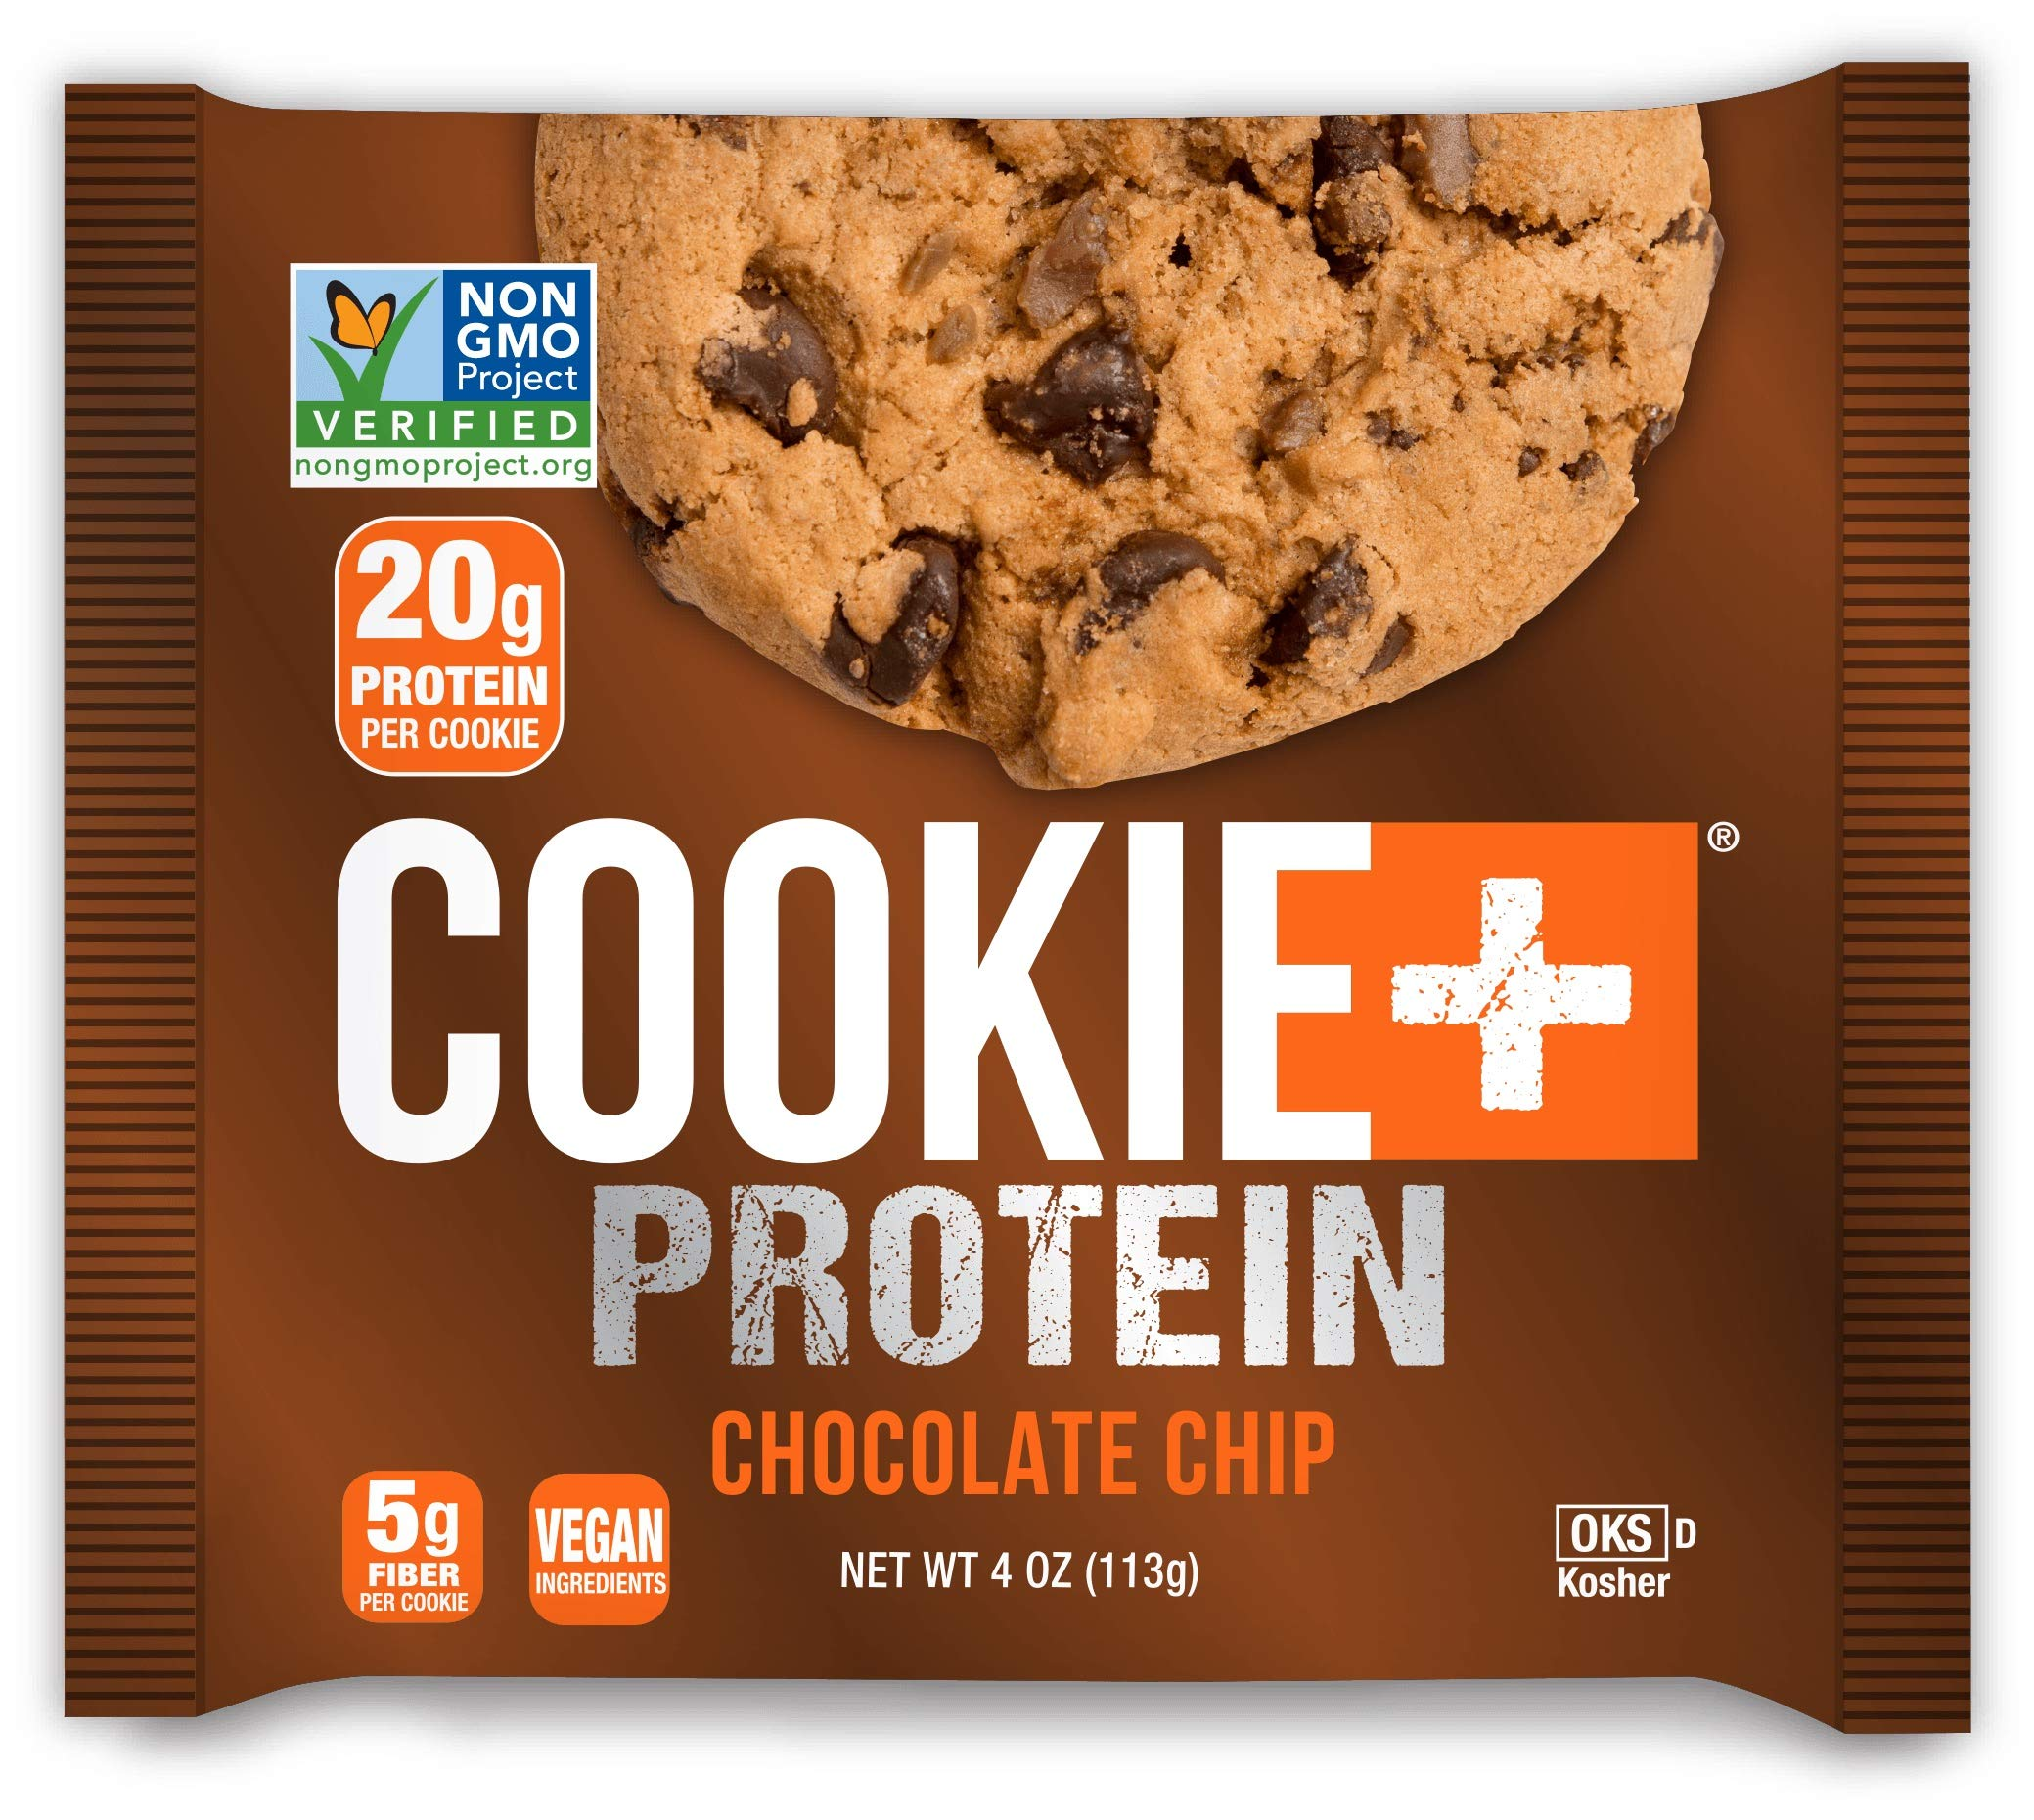 Bake City Cookie Plus Protein | Protein Cookies, 20g Protein, Non GMO, Vegan, Plant Based, Kosher, No Artificial Flavors (VARIETY, 12 Cookies)